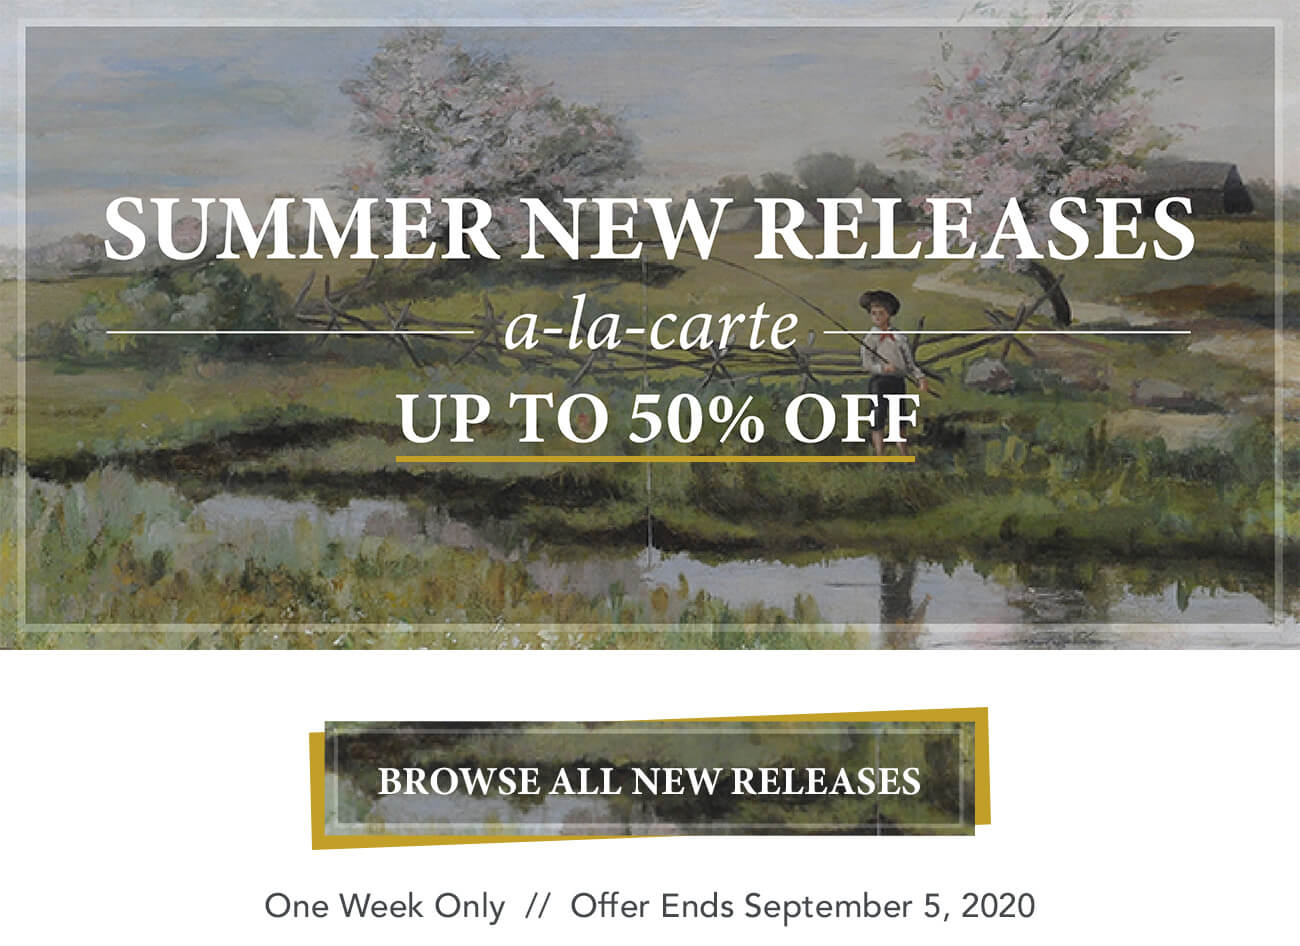 Summer New Releases